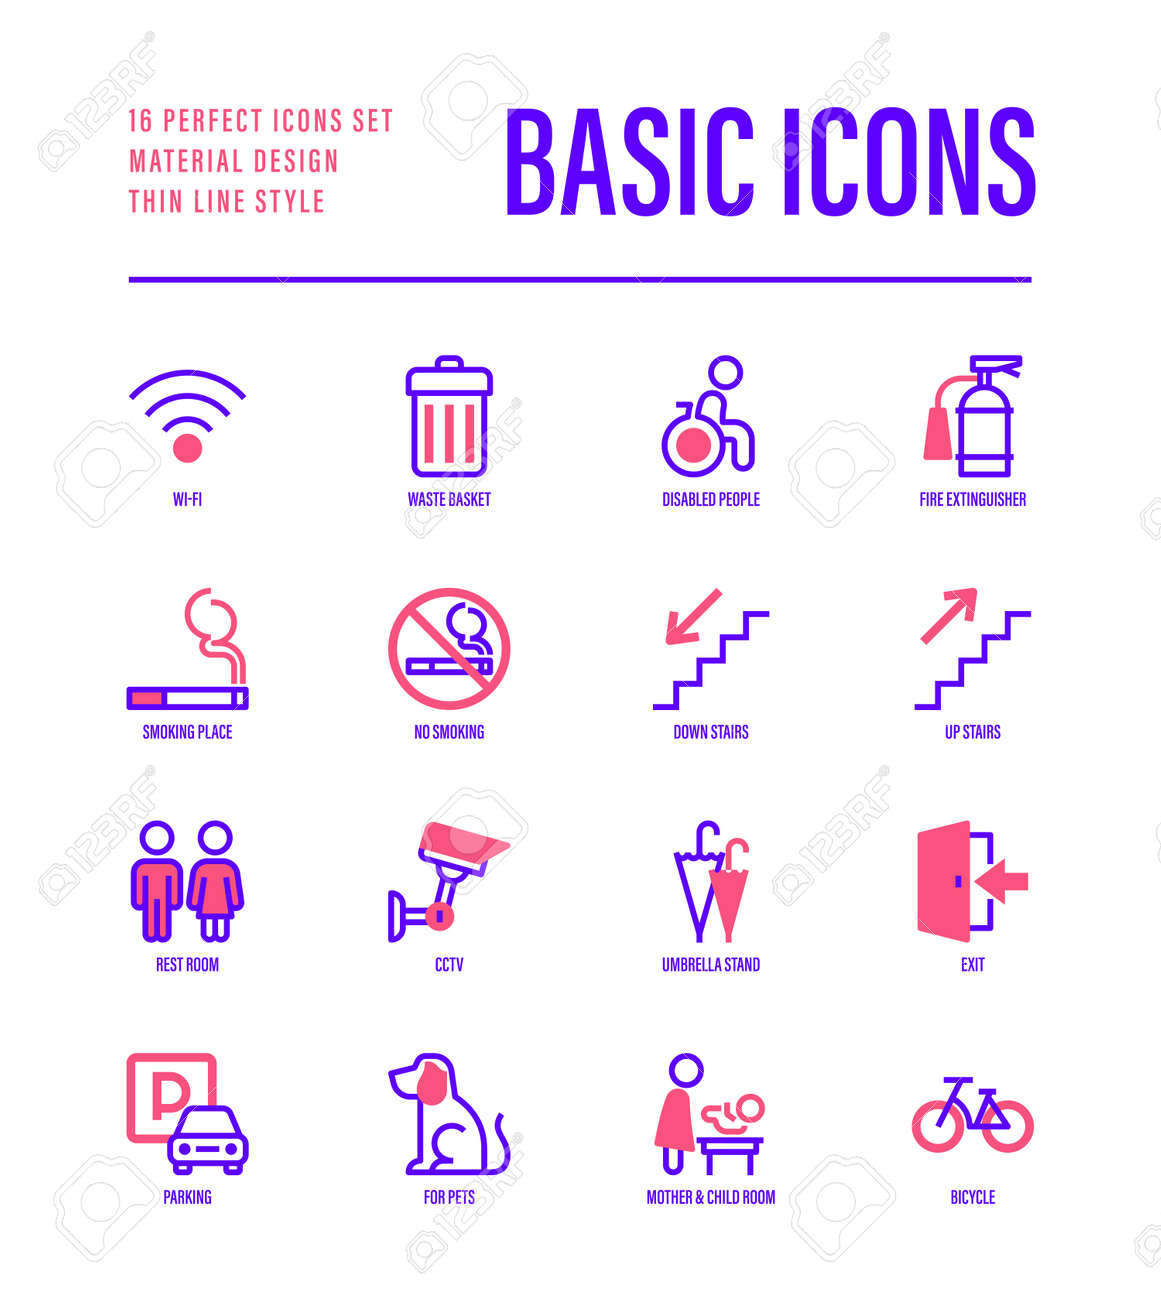 Basic public signs: wi-fi, waste basket, disabled people, fire extinguisher, smoking place, down stairs, up stairs, parking, mother and child room, bicycle. Thin line icons. Vector illustration. - 148396871